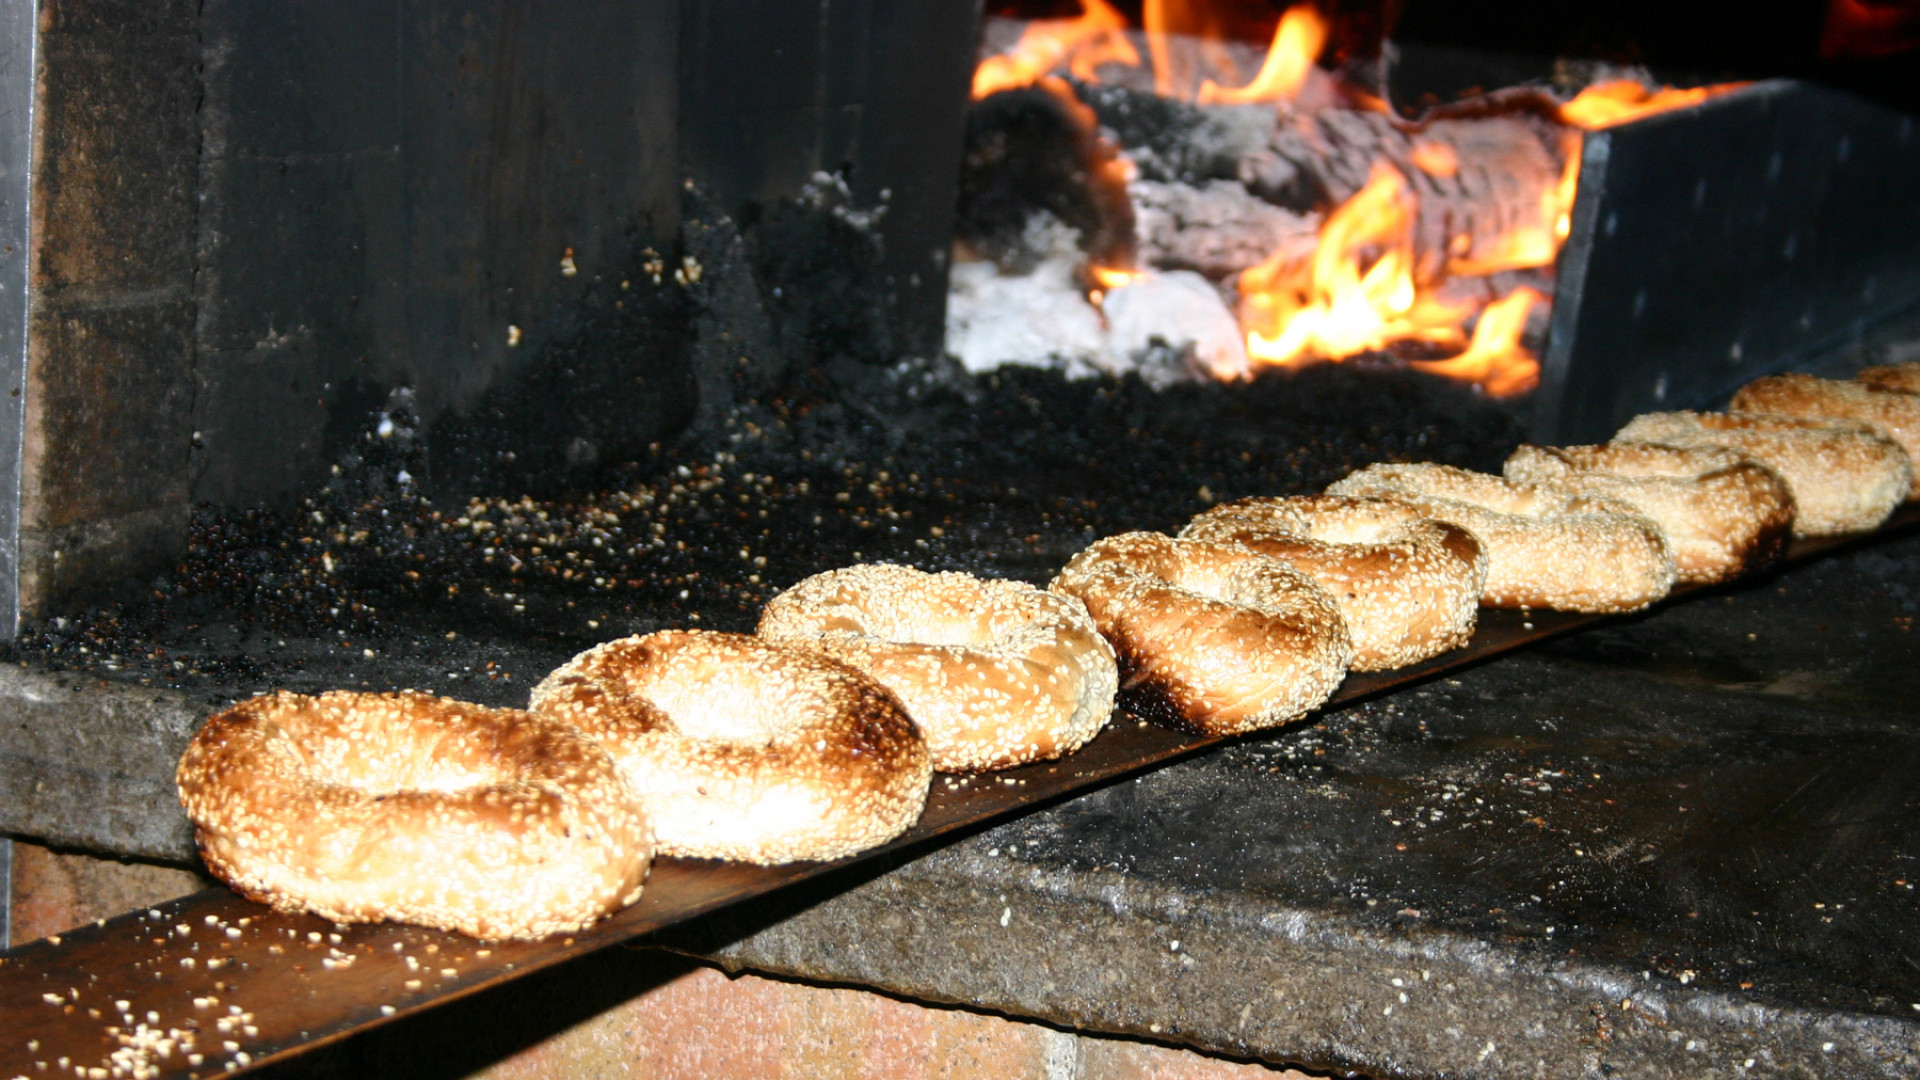 Montreal bagels | Sesame bagels coming out of the oven at St-Viateur bagel shop